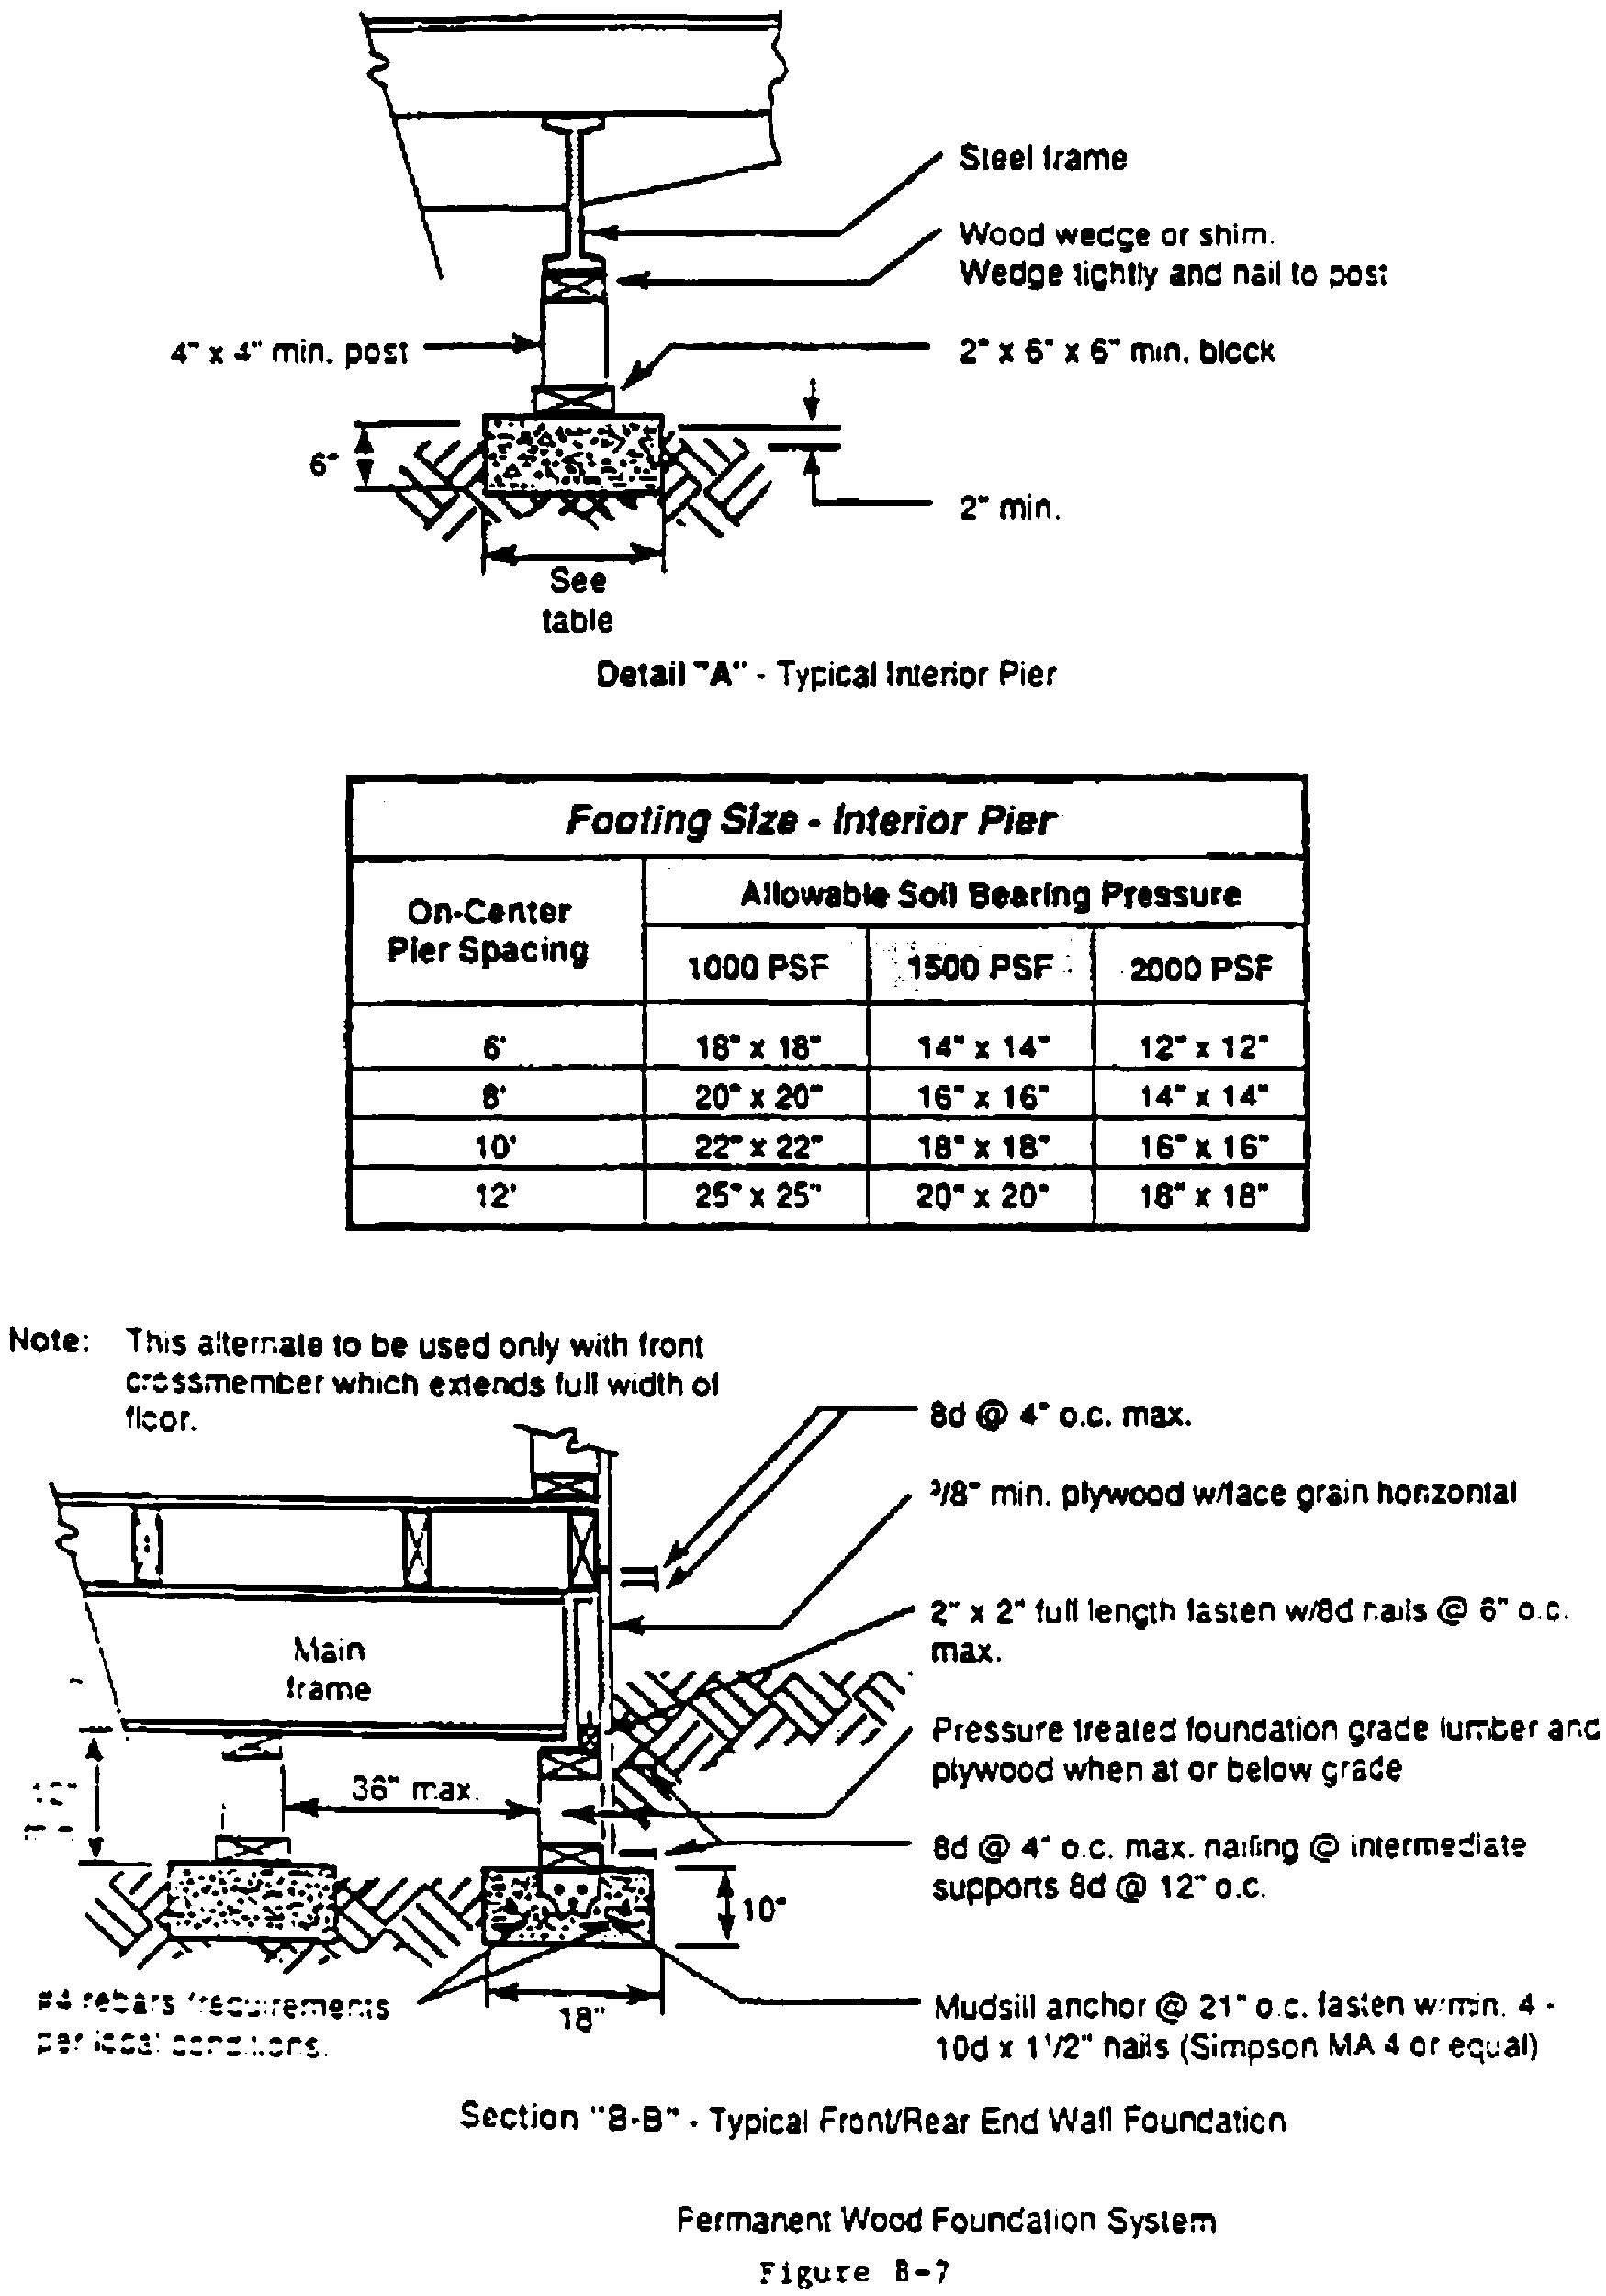 TYPICAL DESIGNS FOR LOAD-BEARING SUPPORTS FOR MANUFACTURED HOMES - Figure 5